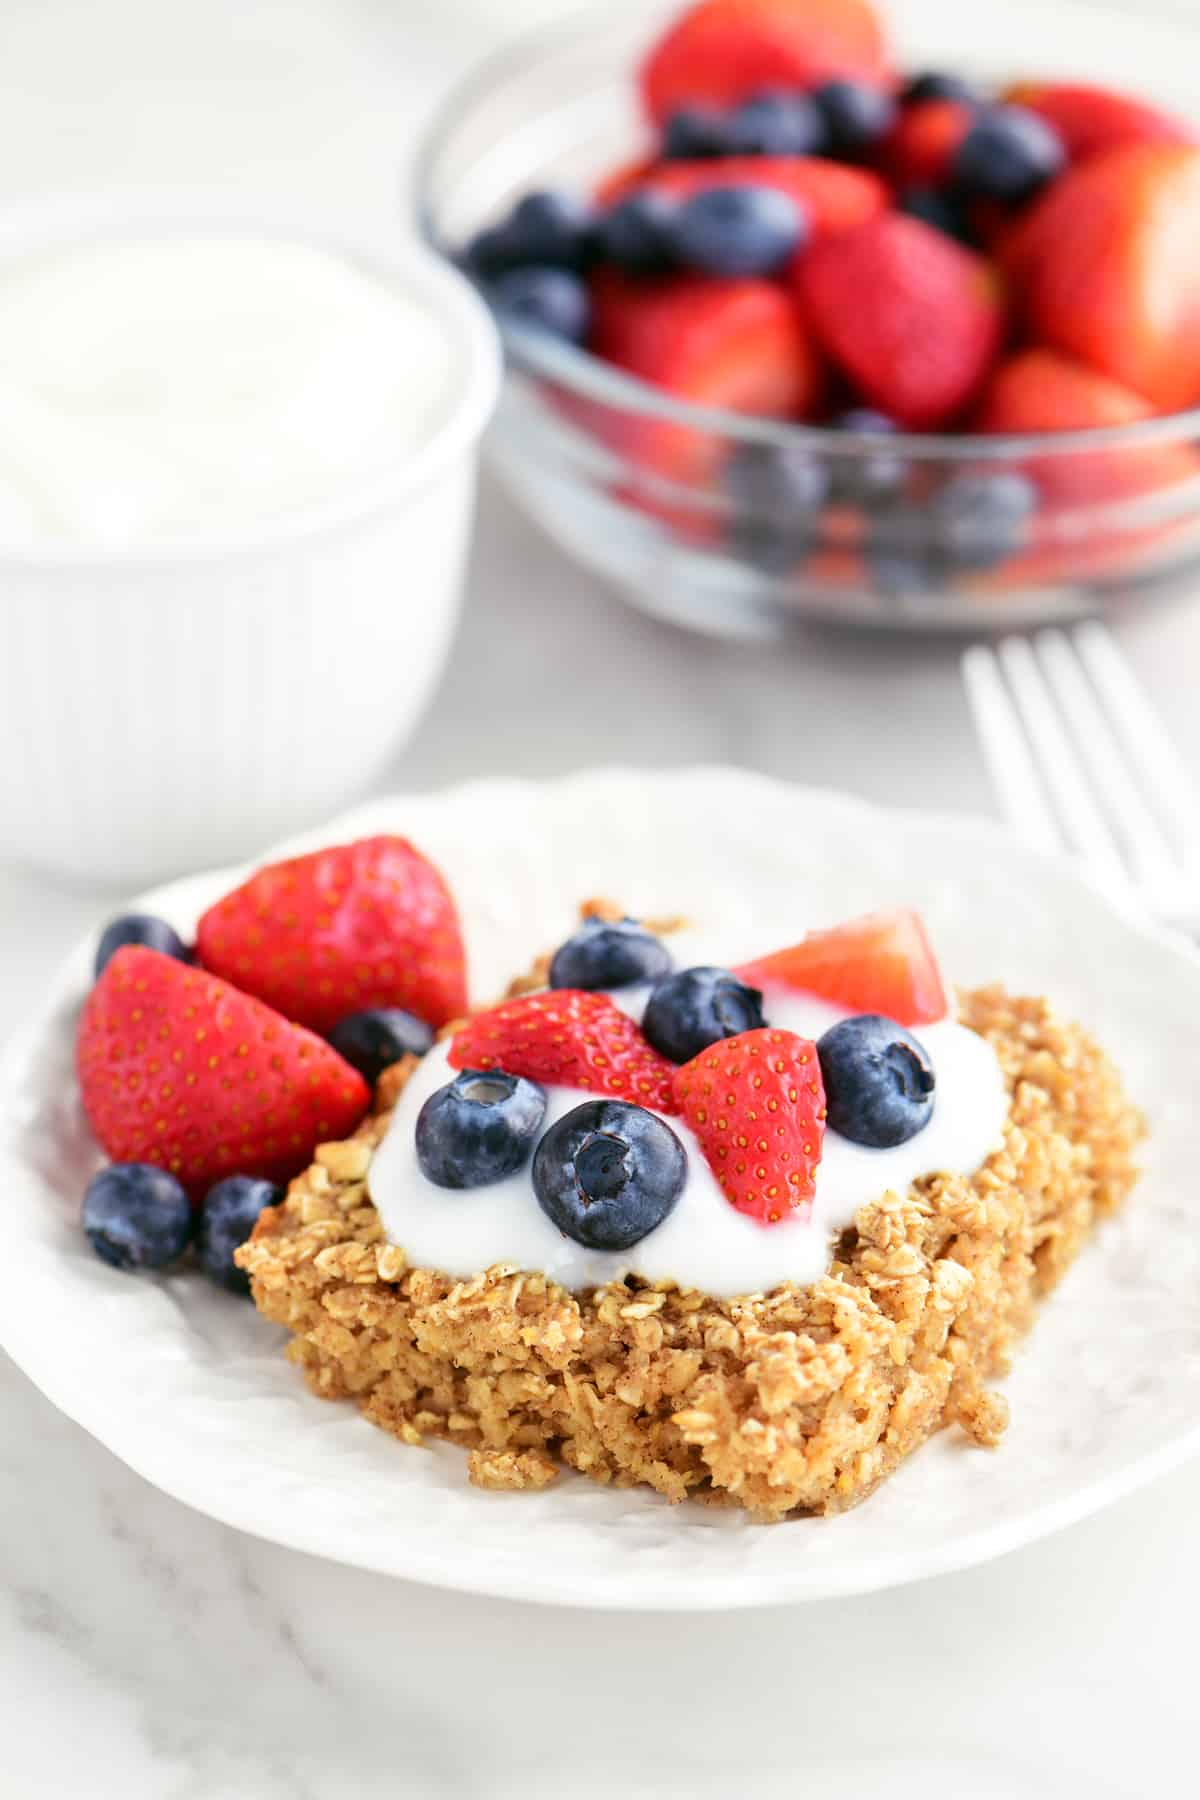 oatmeal and fruit breakfast food on a plate